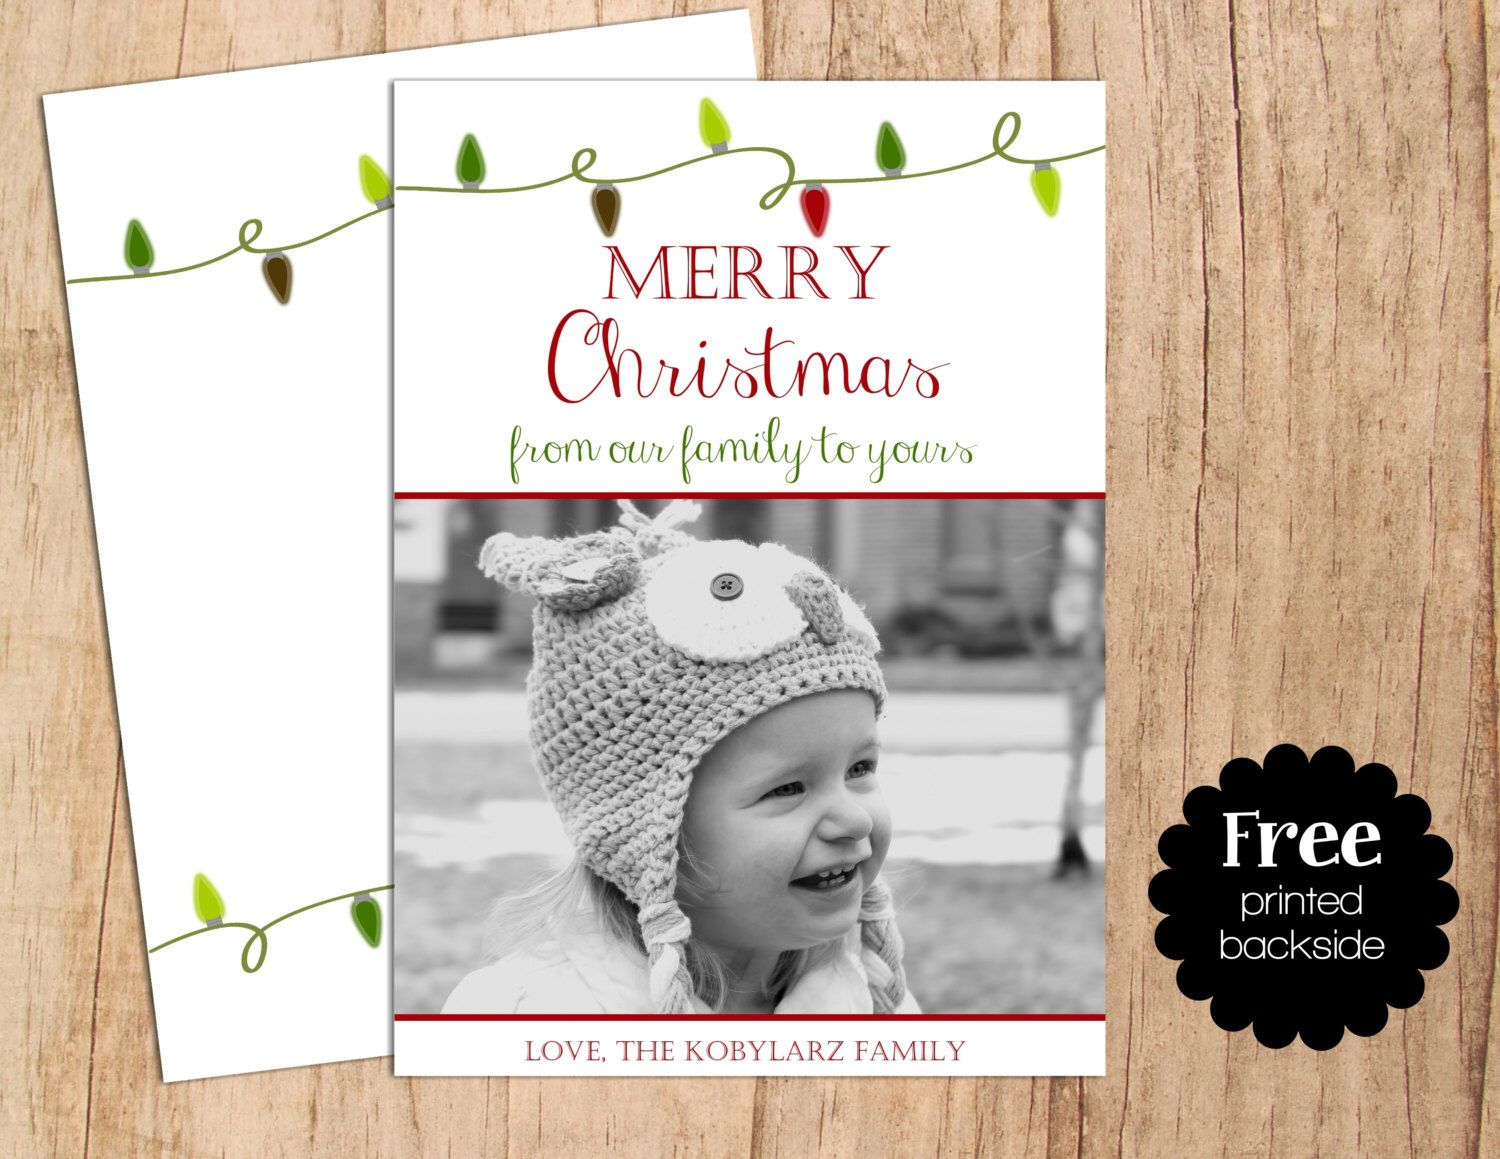 merry christmas holiday lights personalized photo holiday card